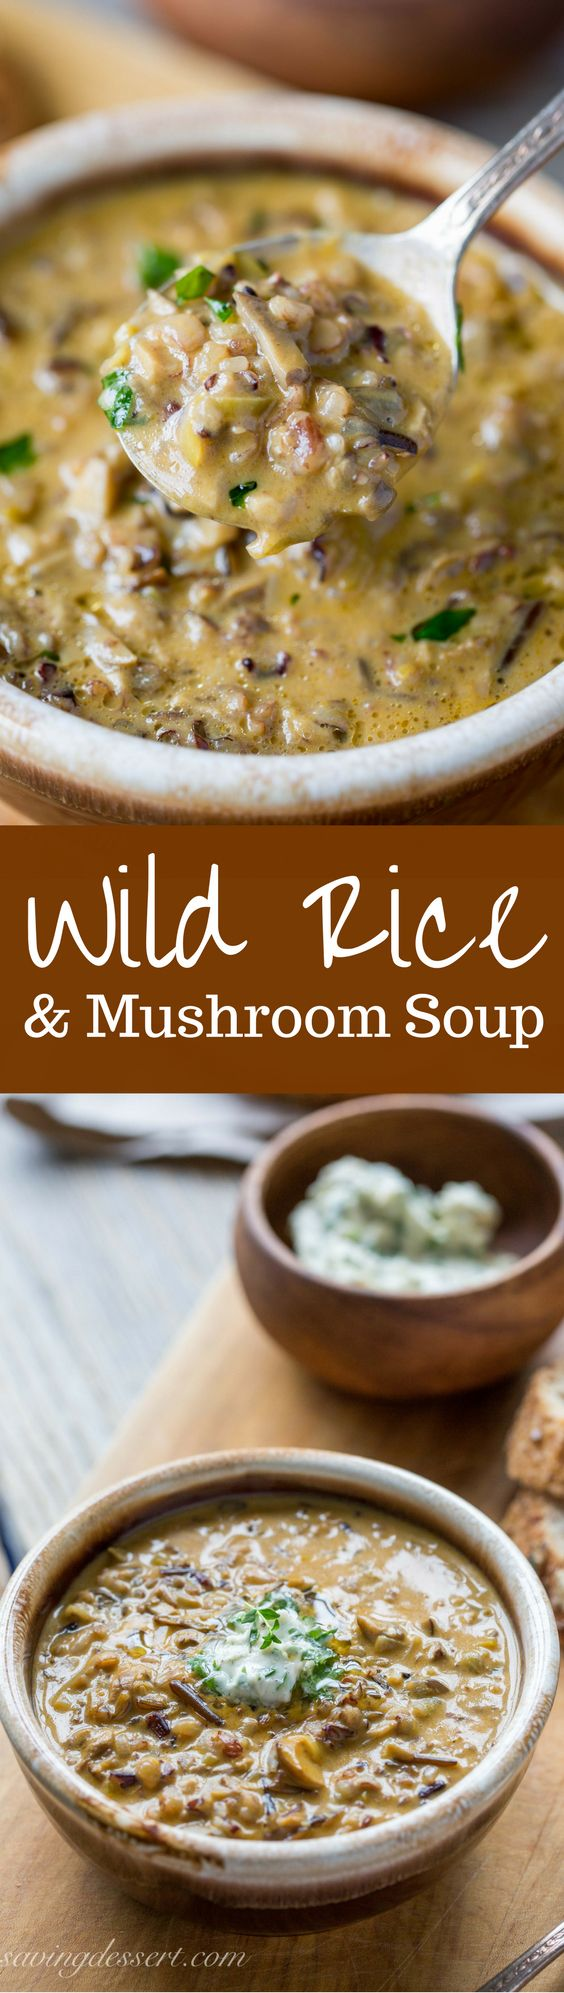 Wild Rice & Mushroom Soup is sure to fill you up with warmth and deliciousness. True comfort food for an icy cold day. We bet the leftovers taste even better the next day... | Saving Dessert food blog